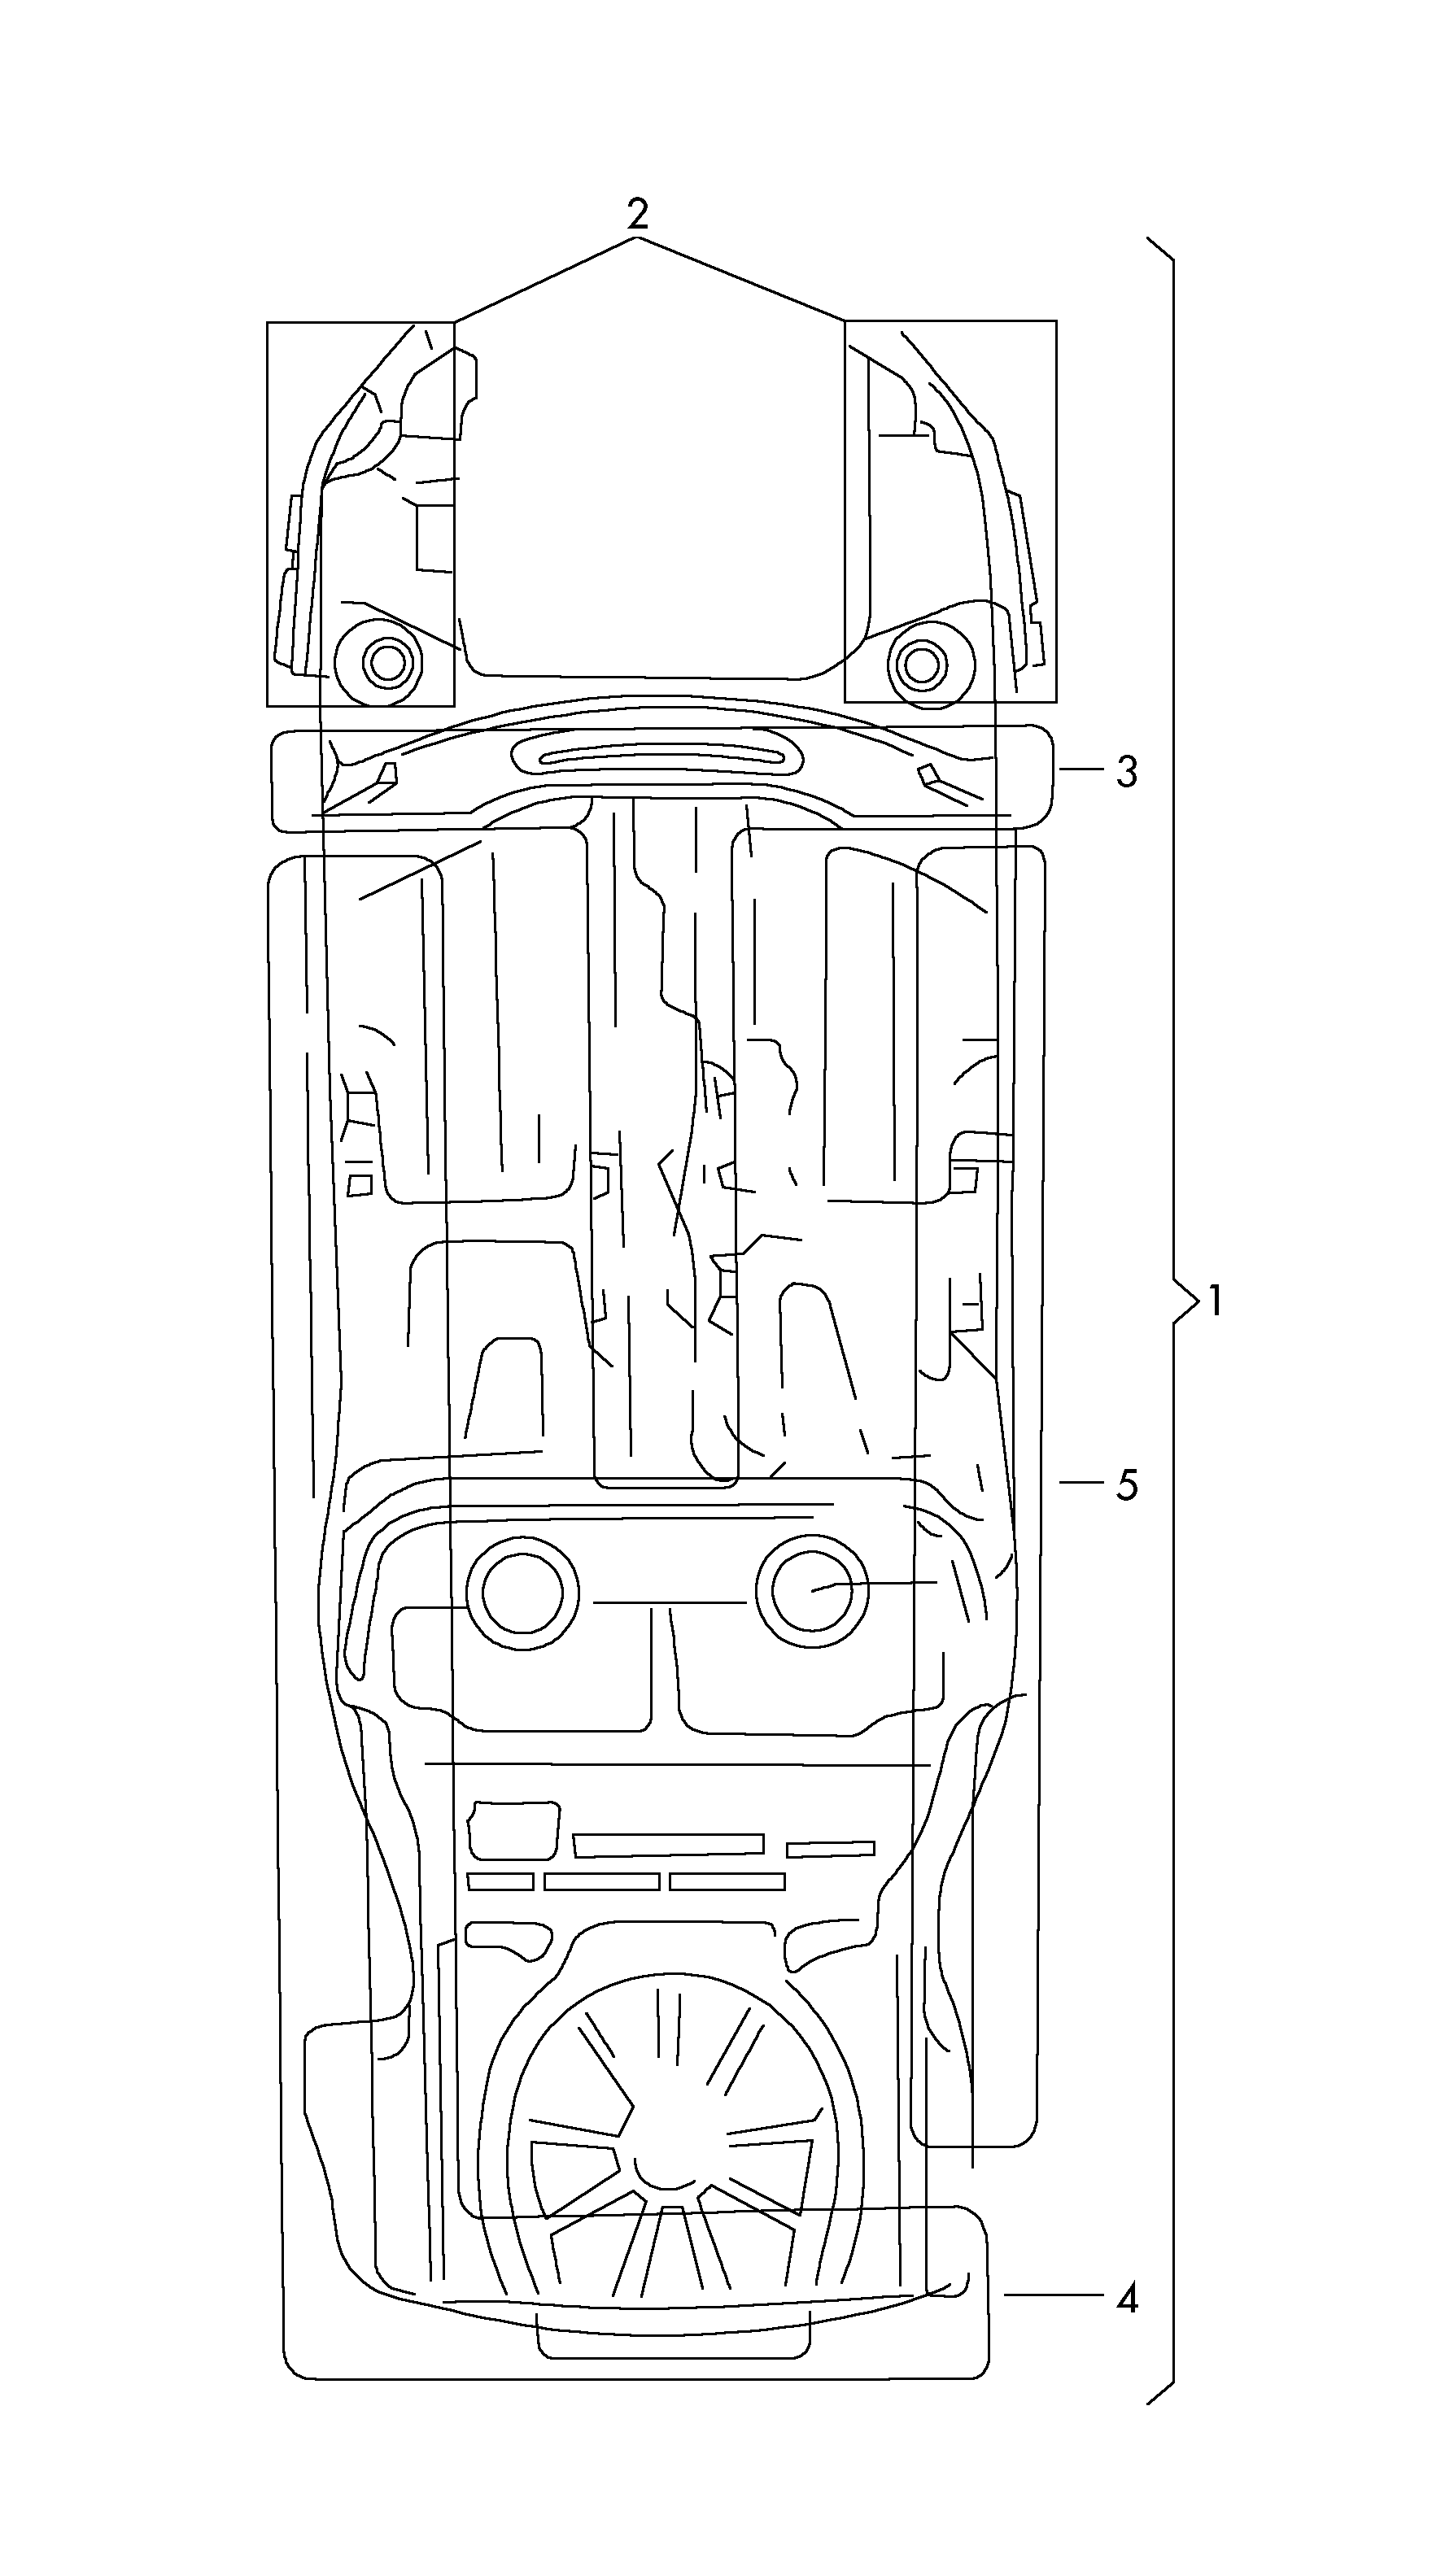 [WRG-4948] Skoda Fabia Central Locking Wiring Diagram